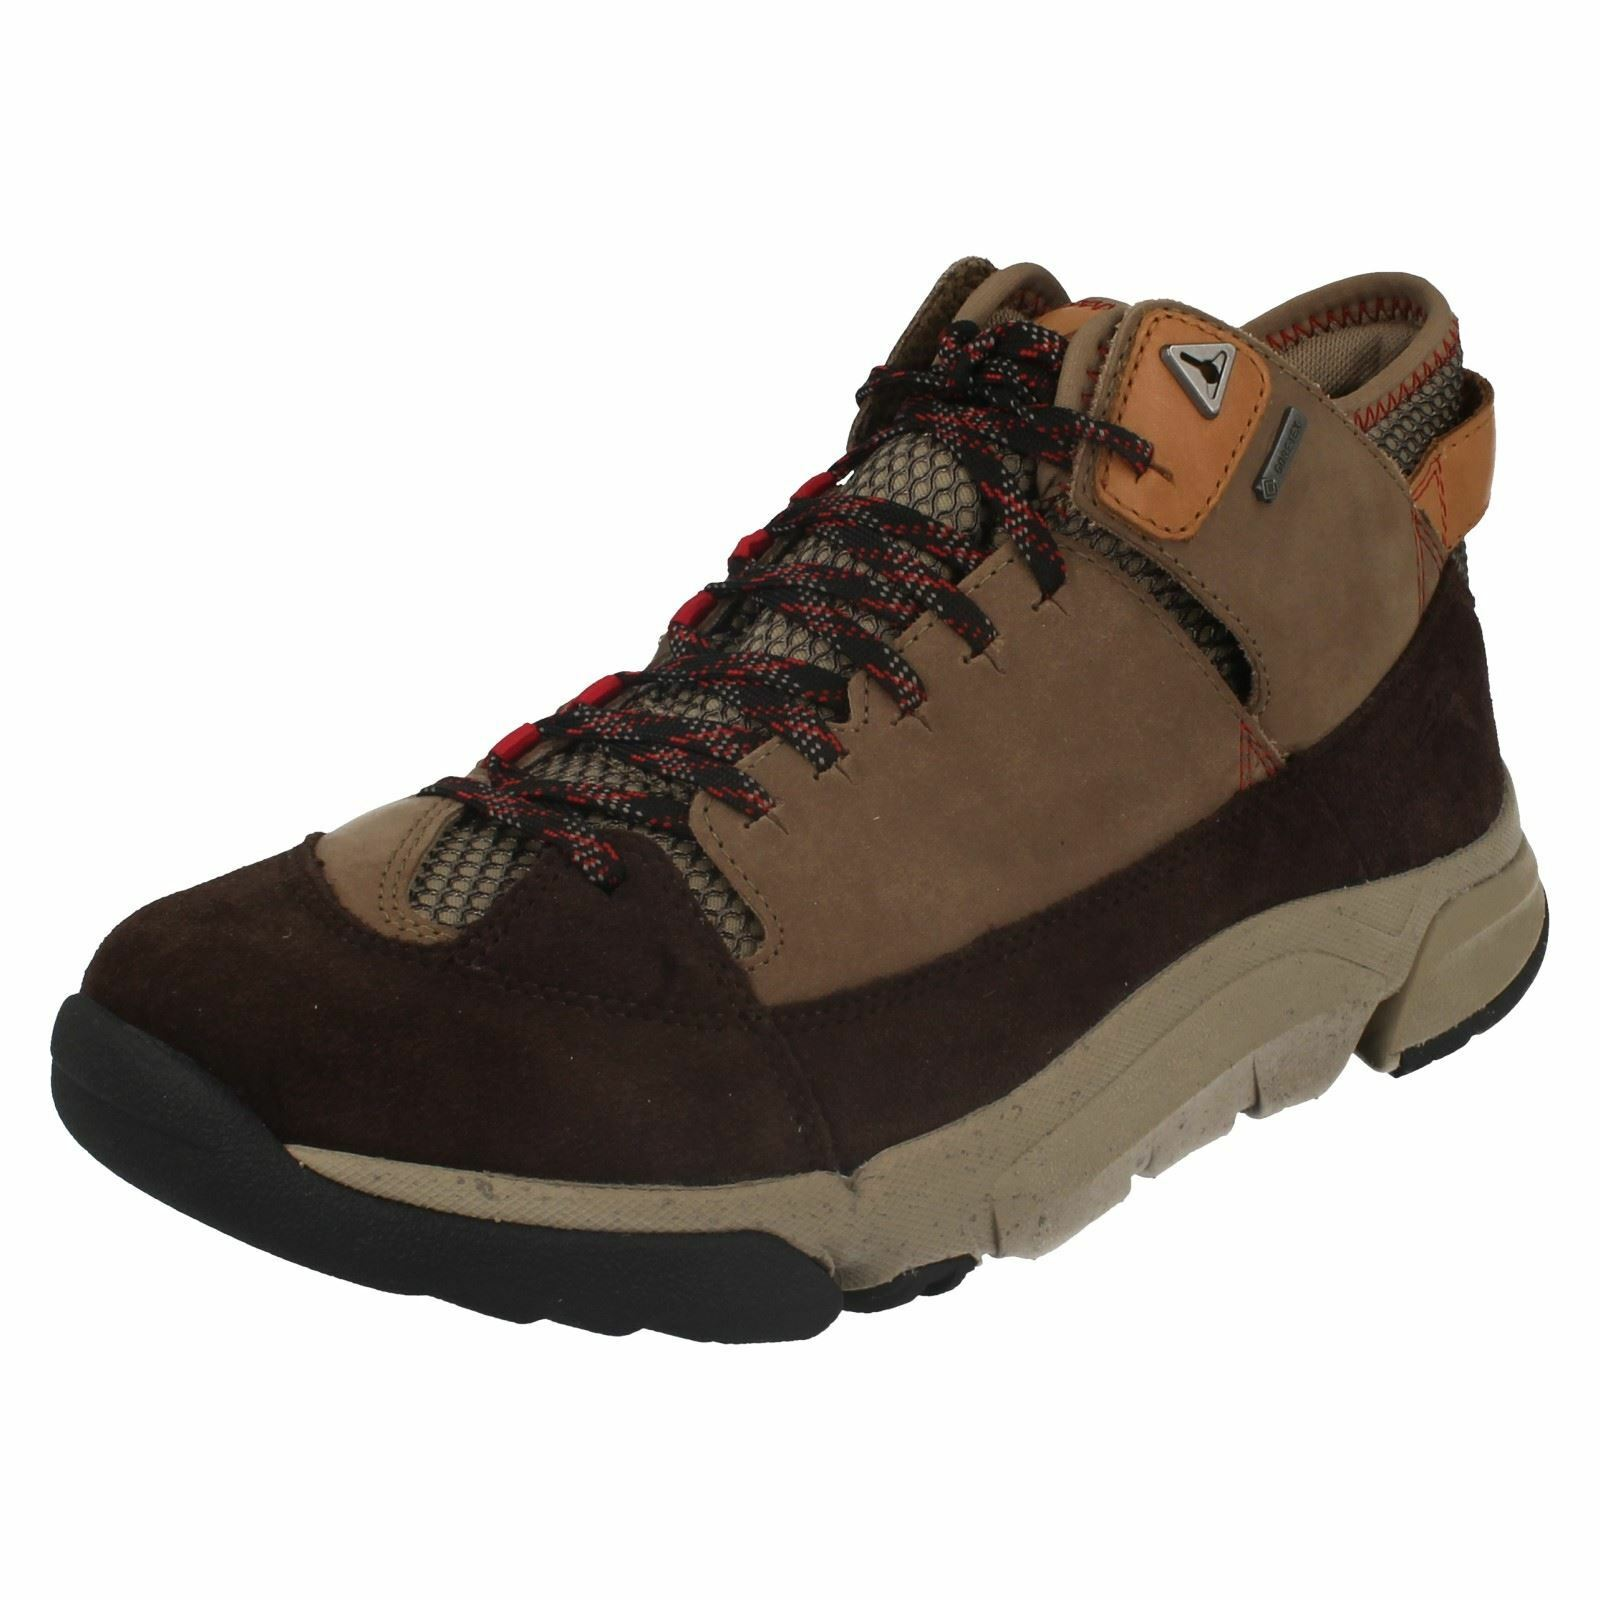 Mens Clarks Outdoor Gore-Tex Boots Tri Outflex GTX